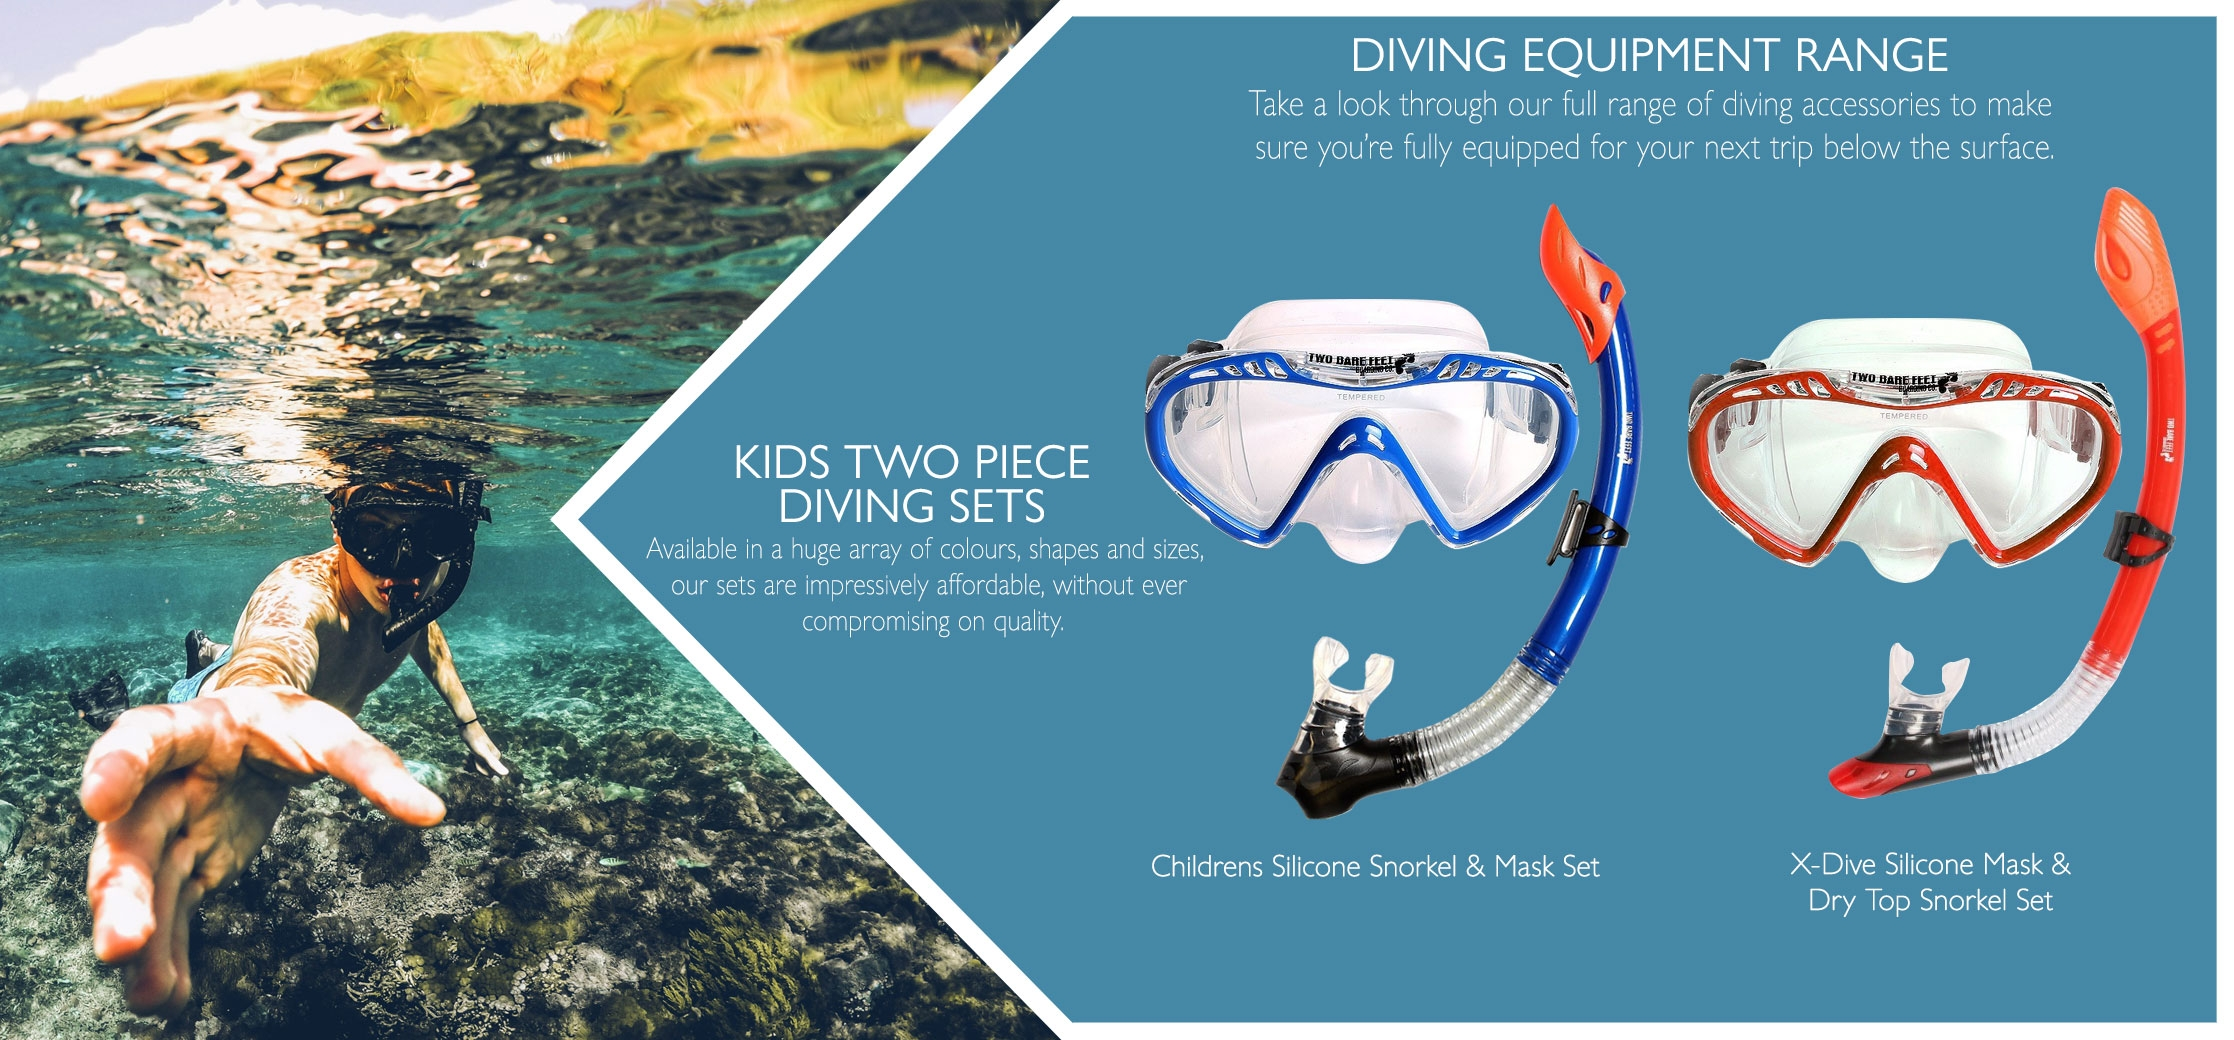 Kids 2 piece diving set products